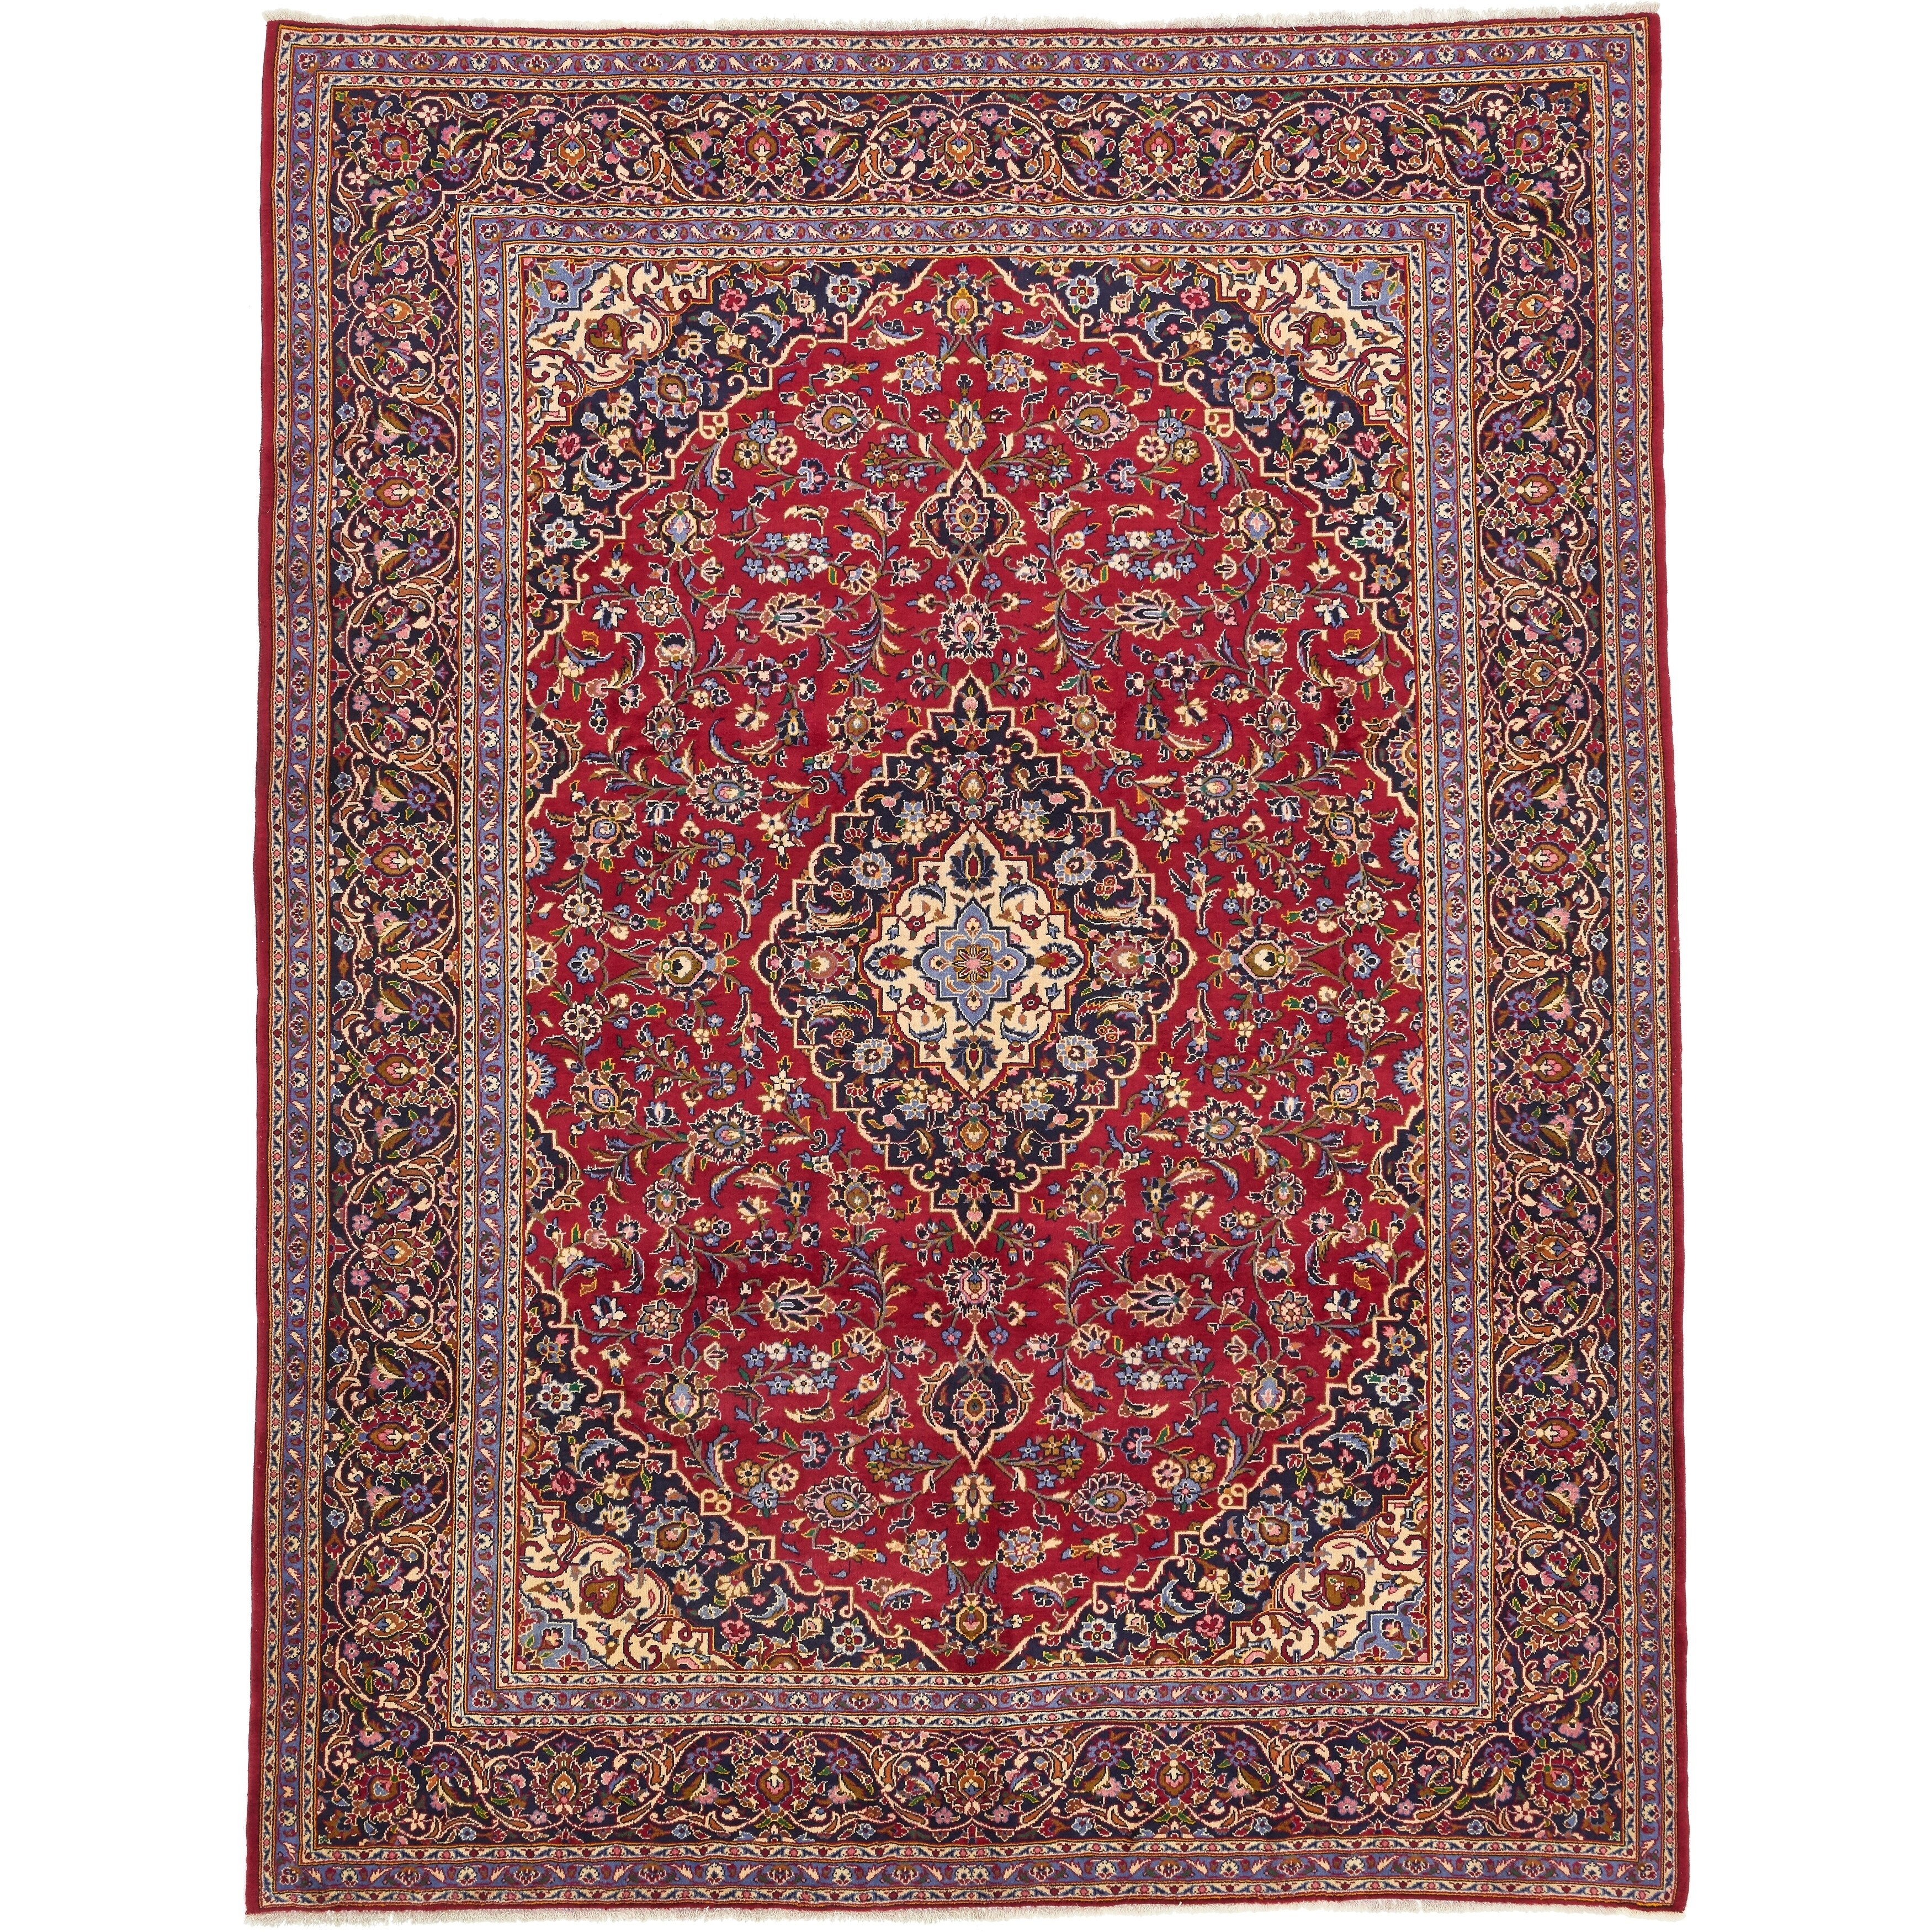 Hand Knotted Kashan Wool Area Rug - 9 7 x 12 8 (Red - 9 7 x 12 8)